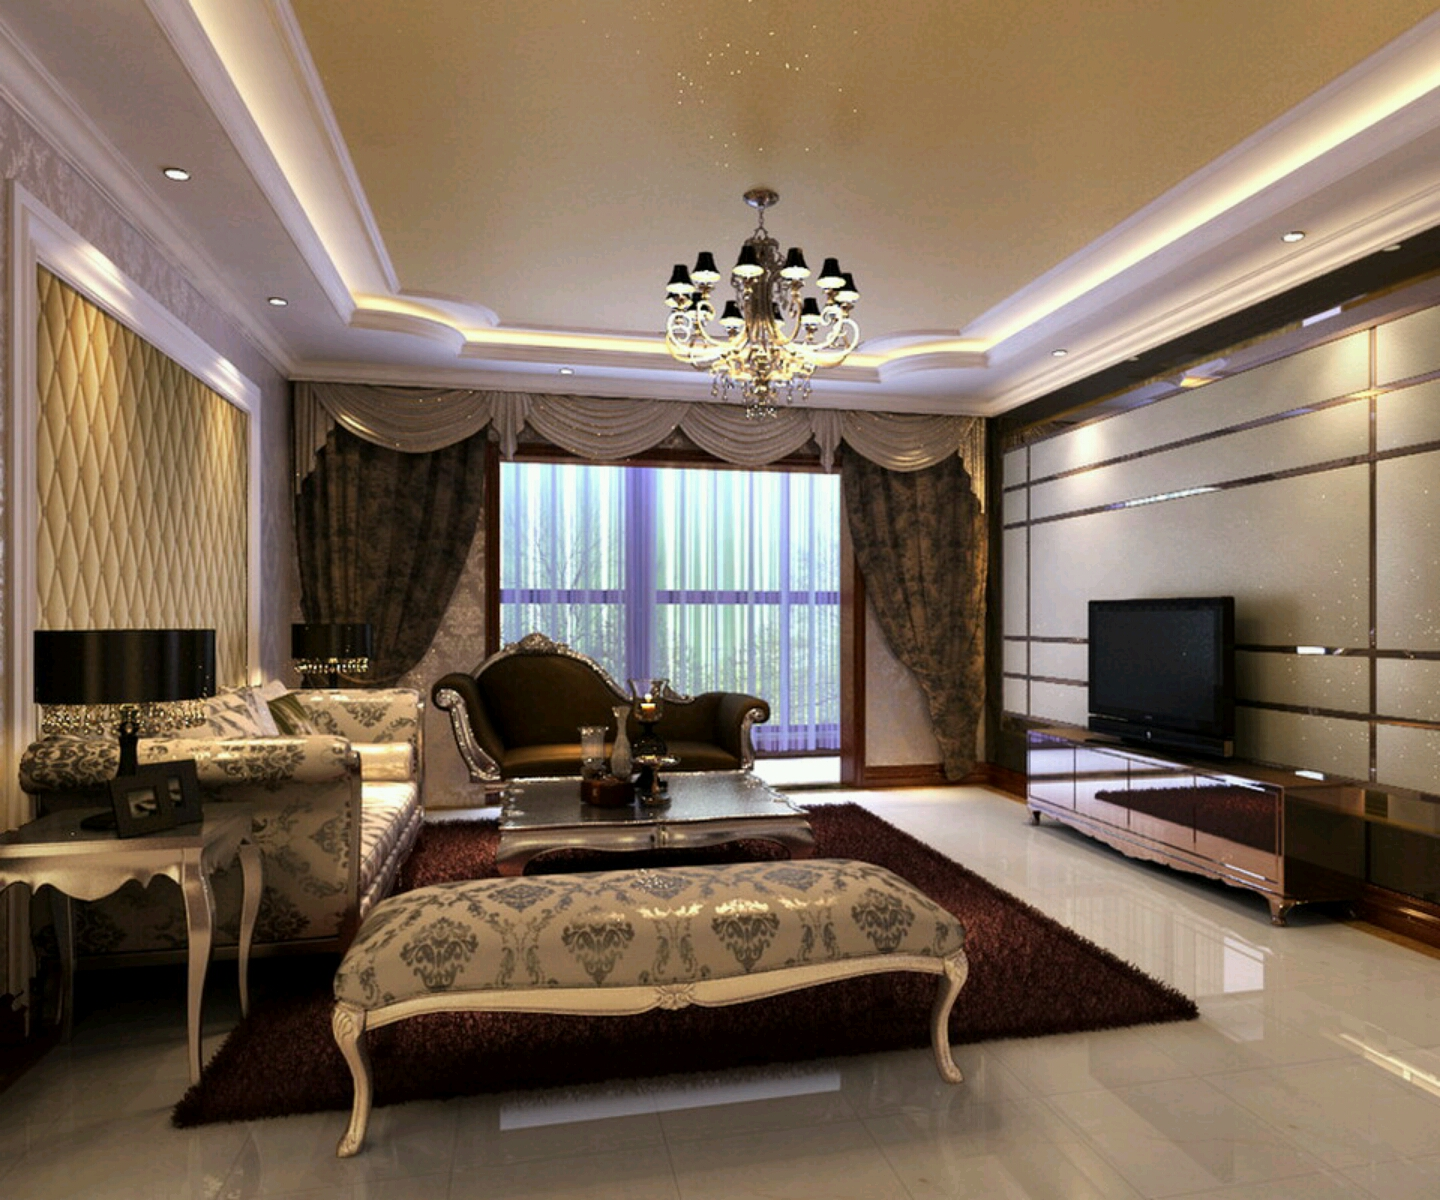 Interior Design Ideas For Home: New Home Designs Latest.: Luxury Homes Interior Decoration